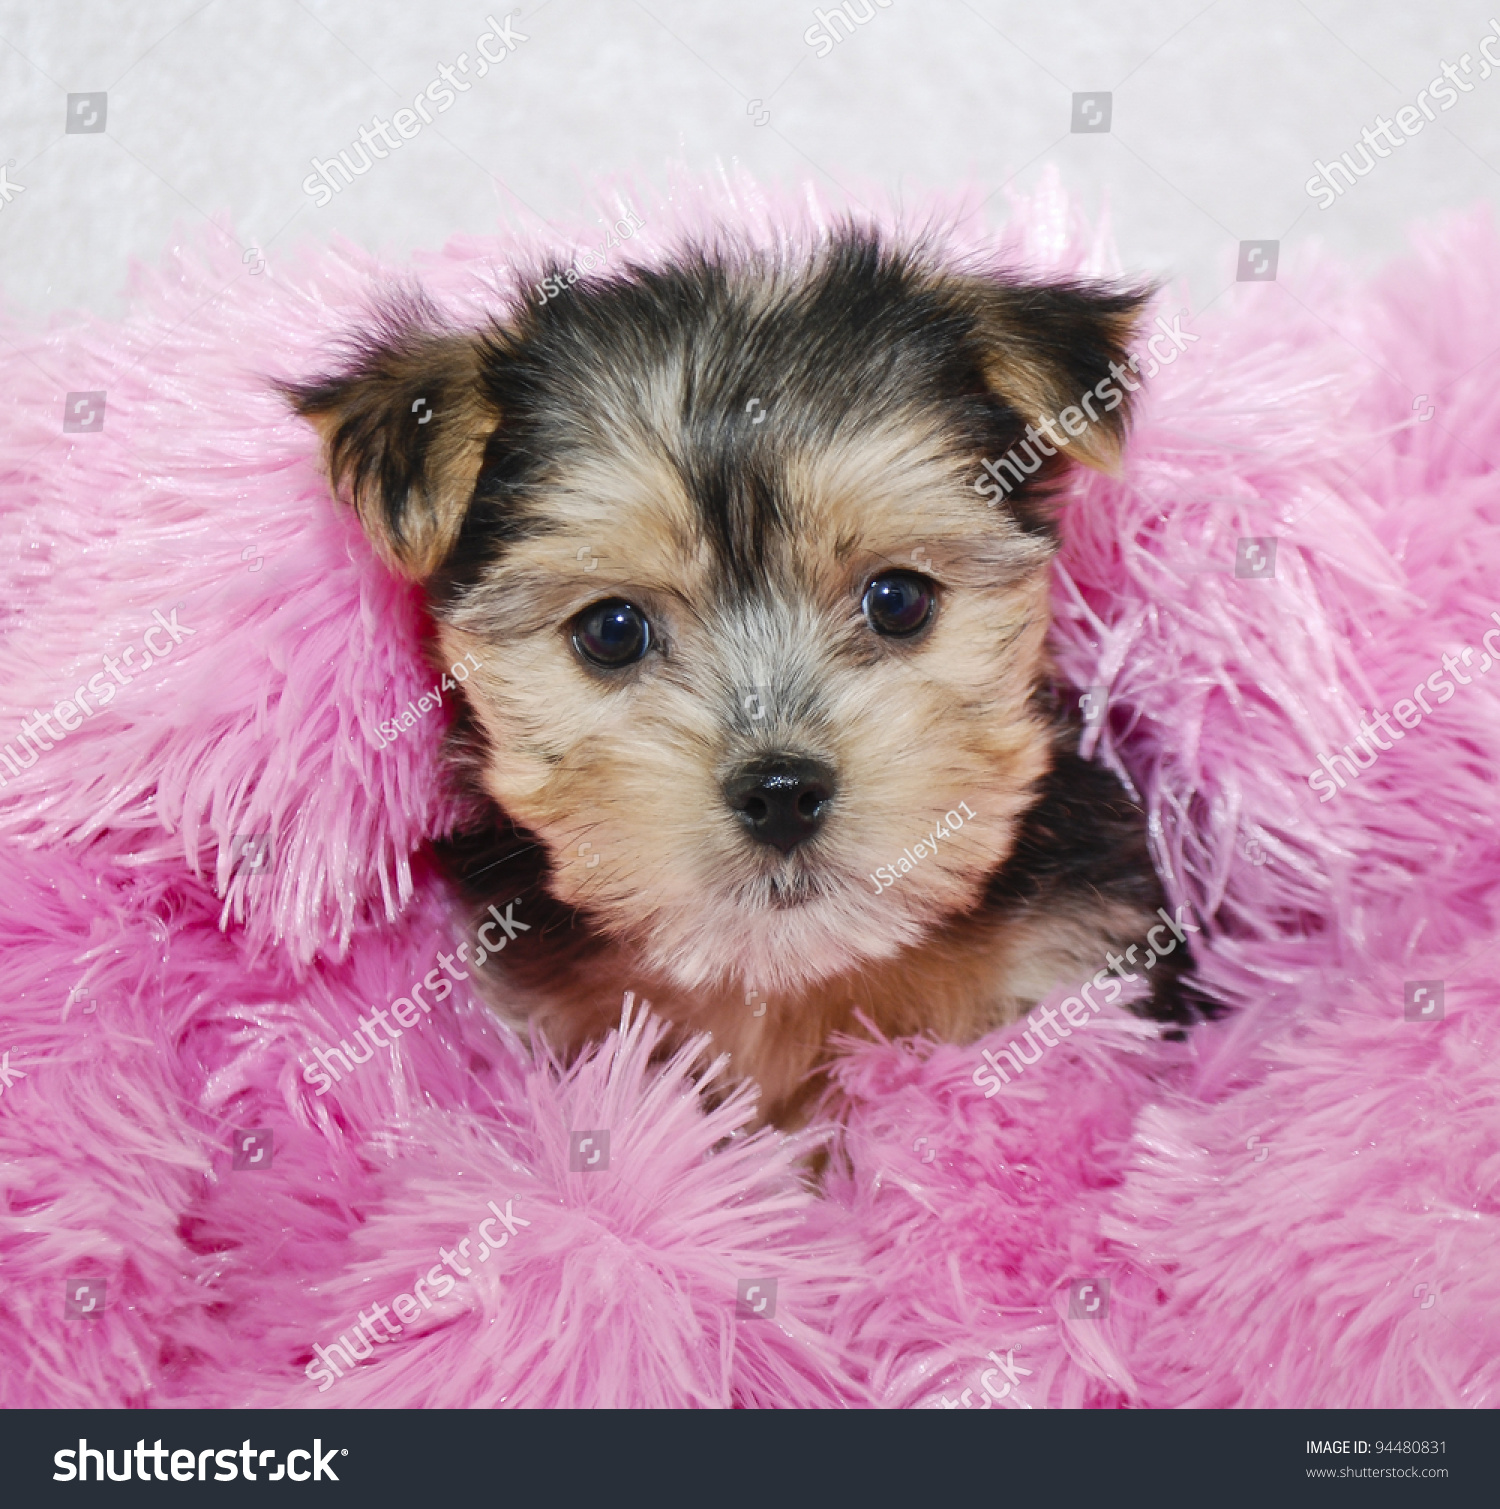 Cute Morkie Puppy Snuggled Pink Blanket Stock Photo